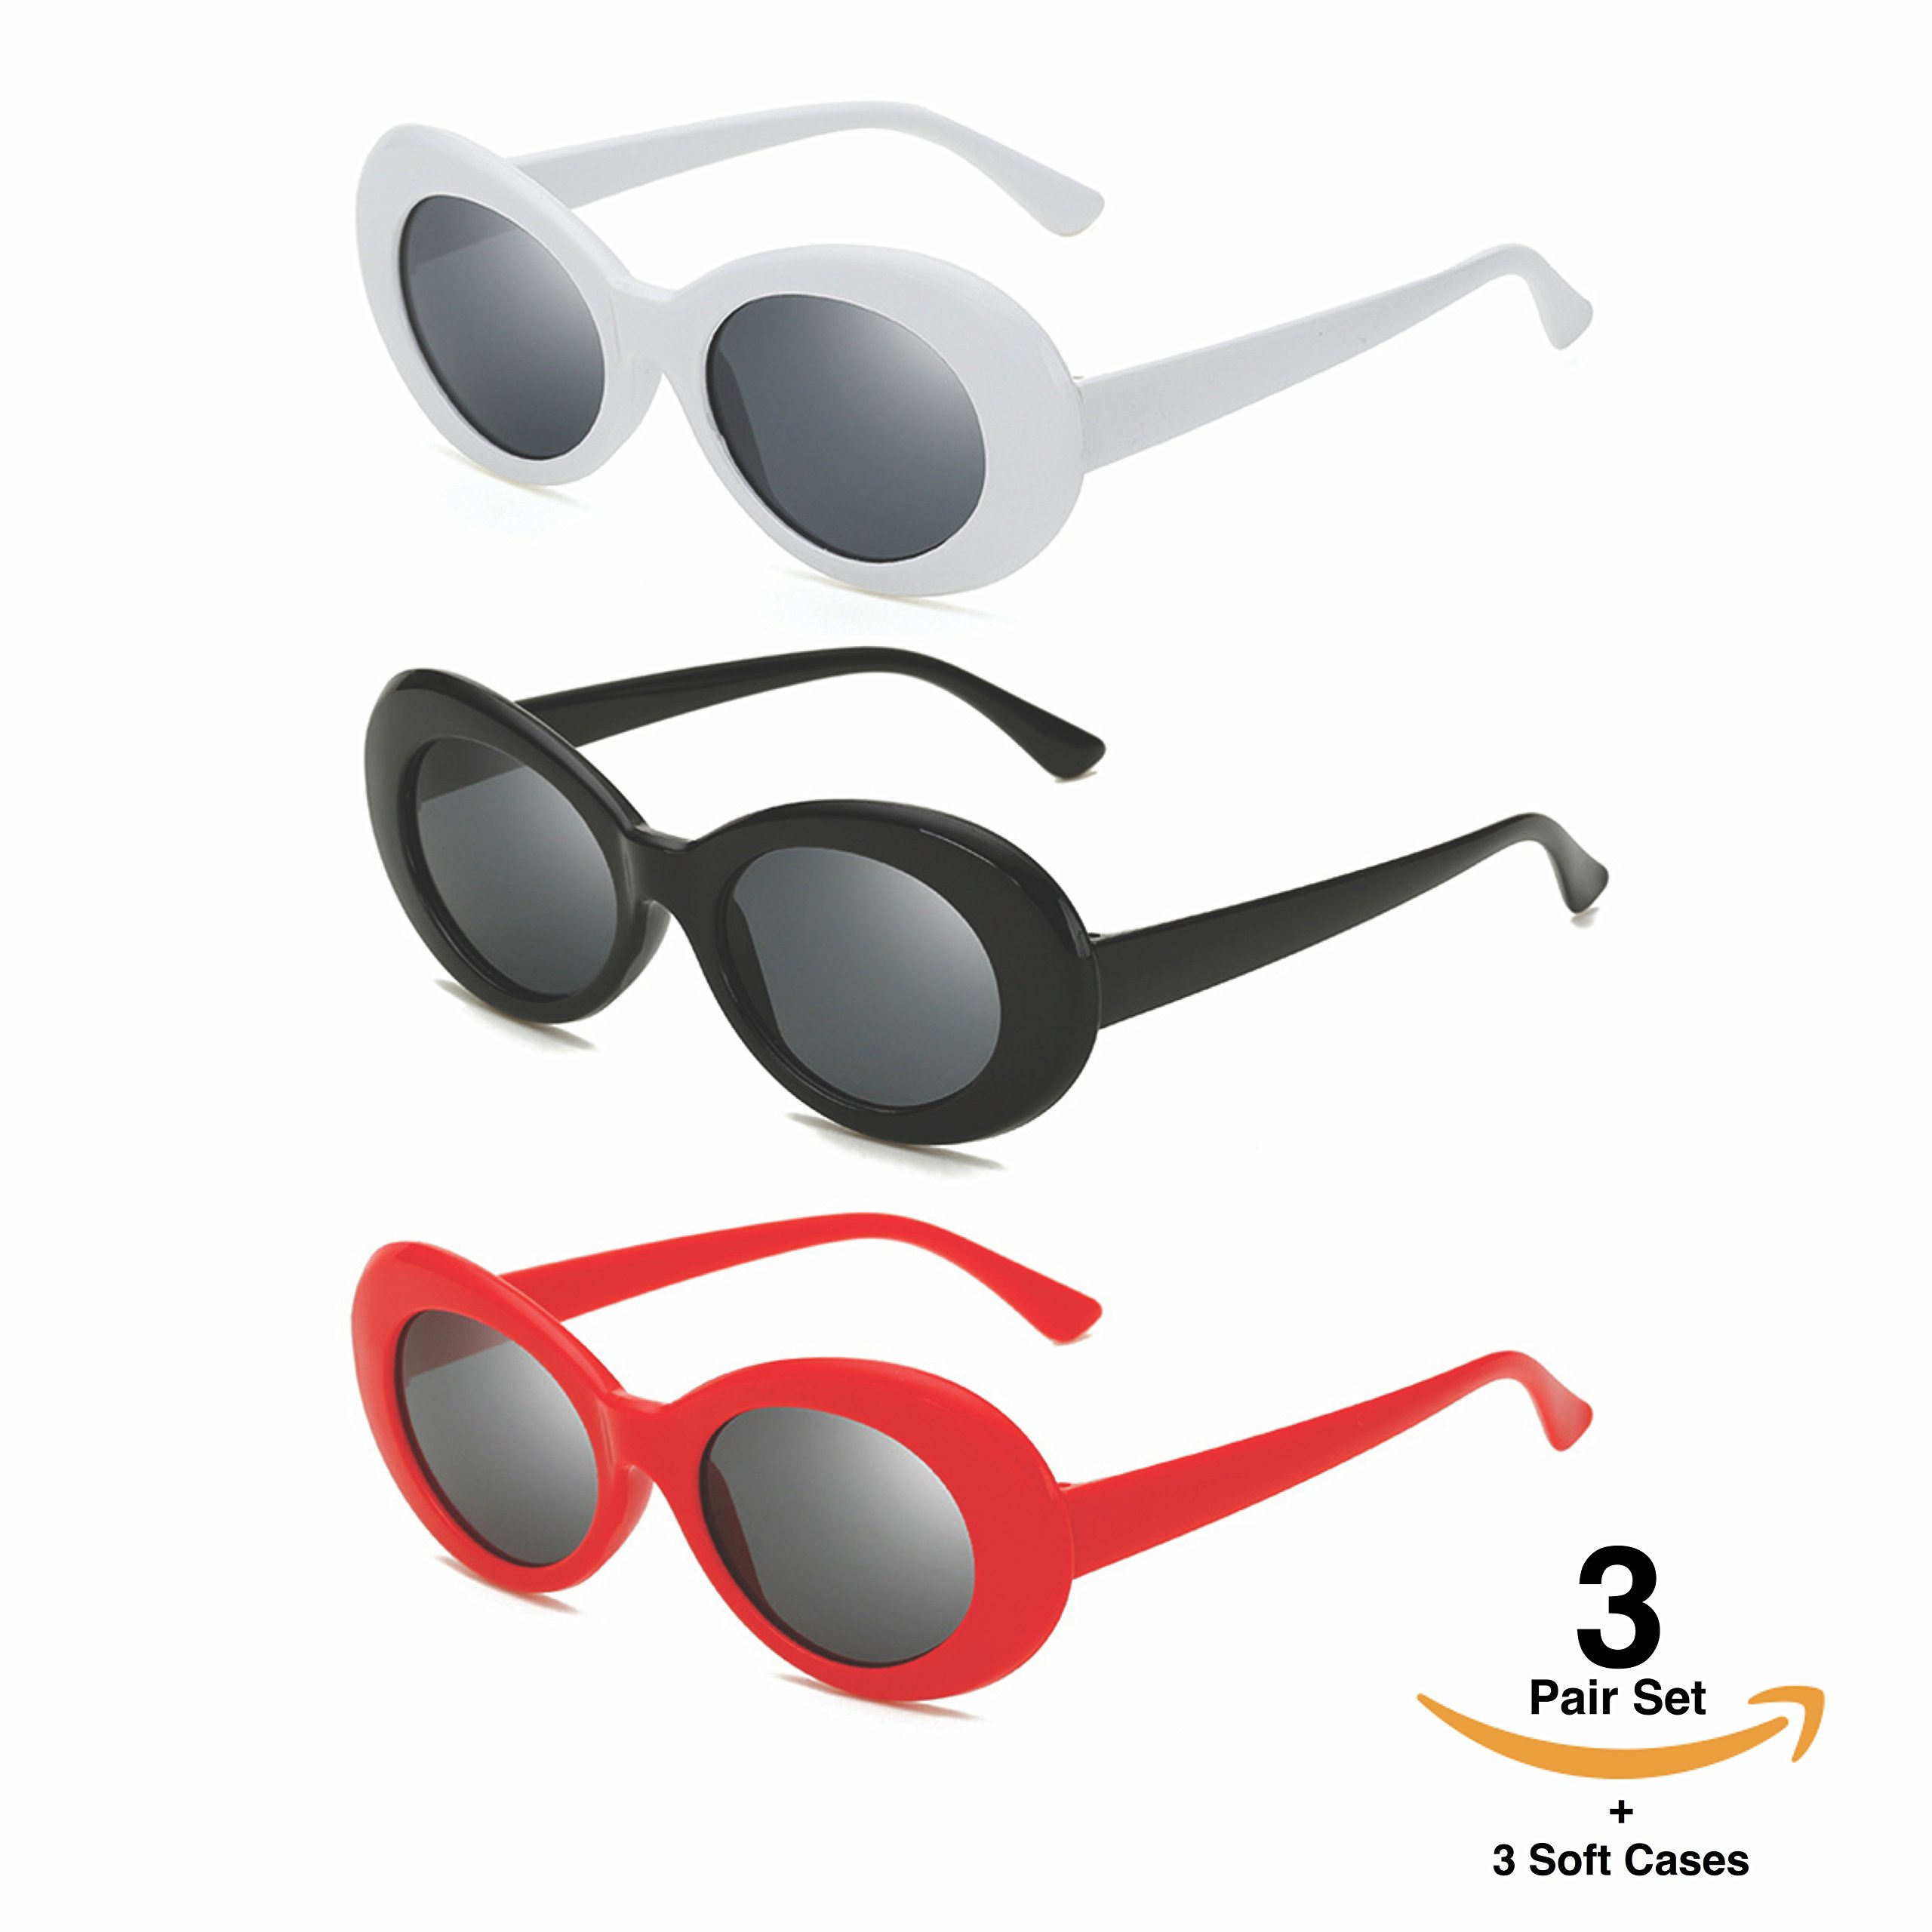 ac48f7b58b Hype N Clout Clout Goggles Set With Soft Cases- Kurt Cobain Oval Sunglasses  White